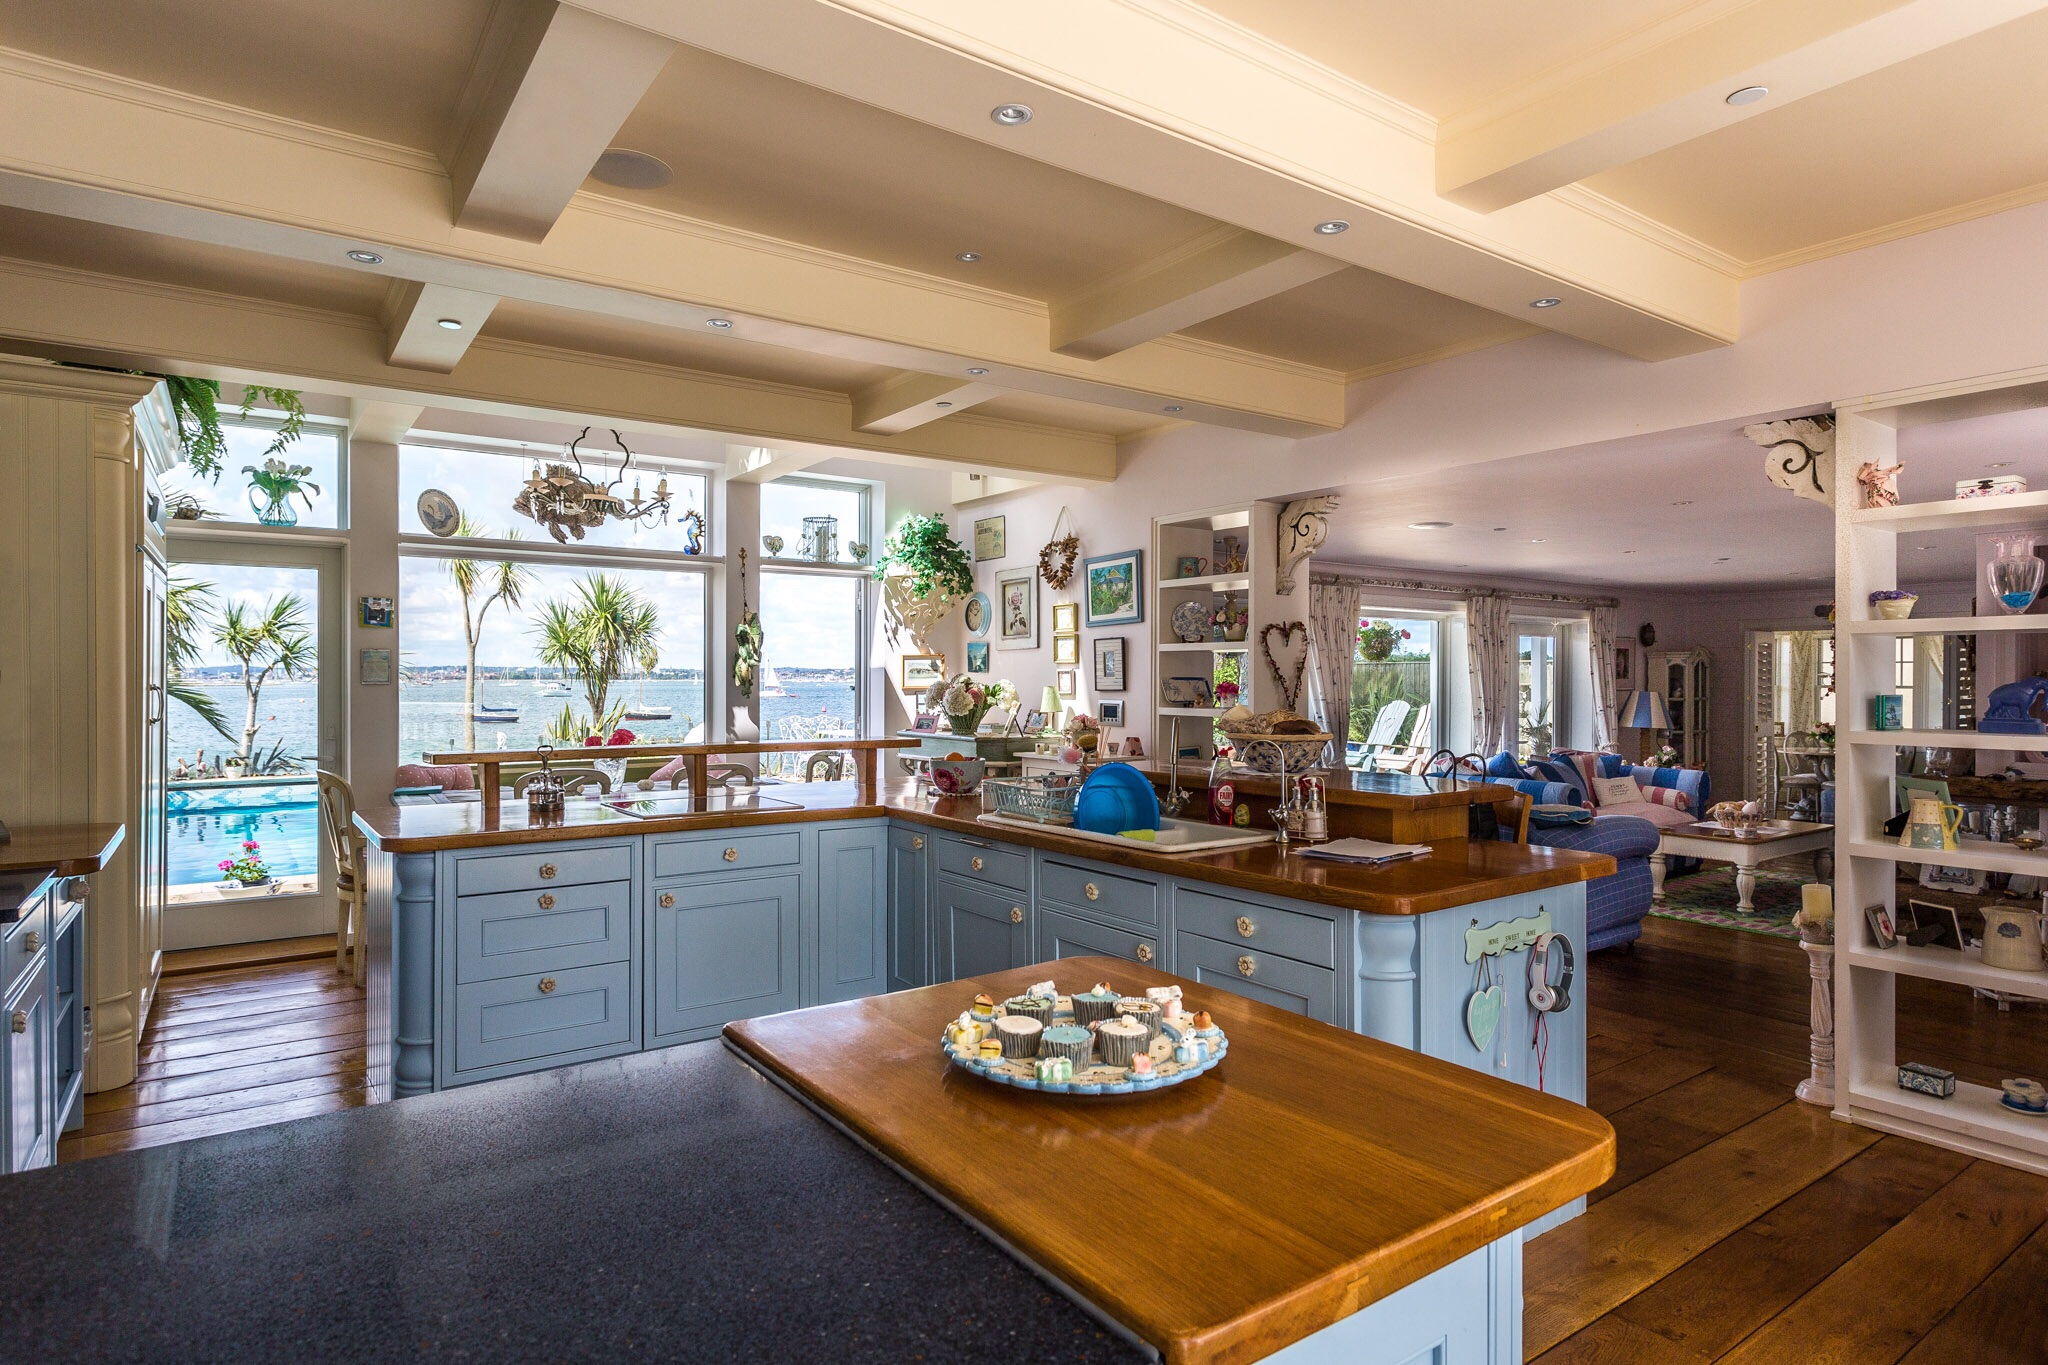 Picture of a Dorset kitchen